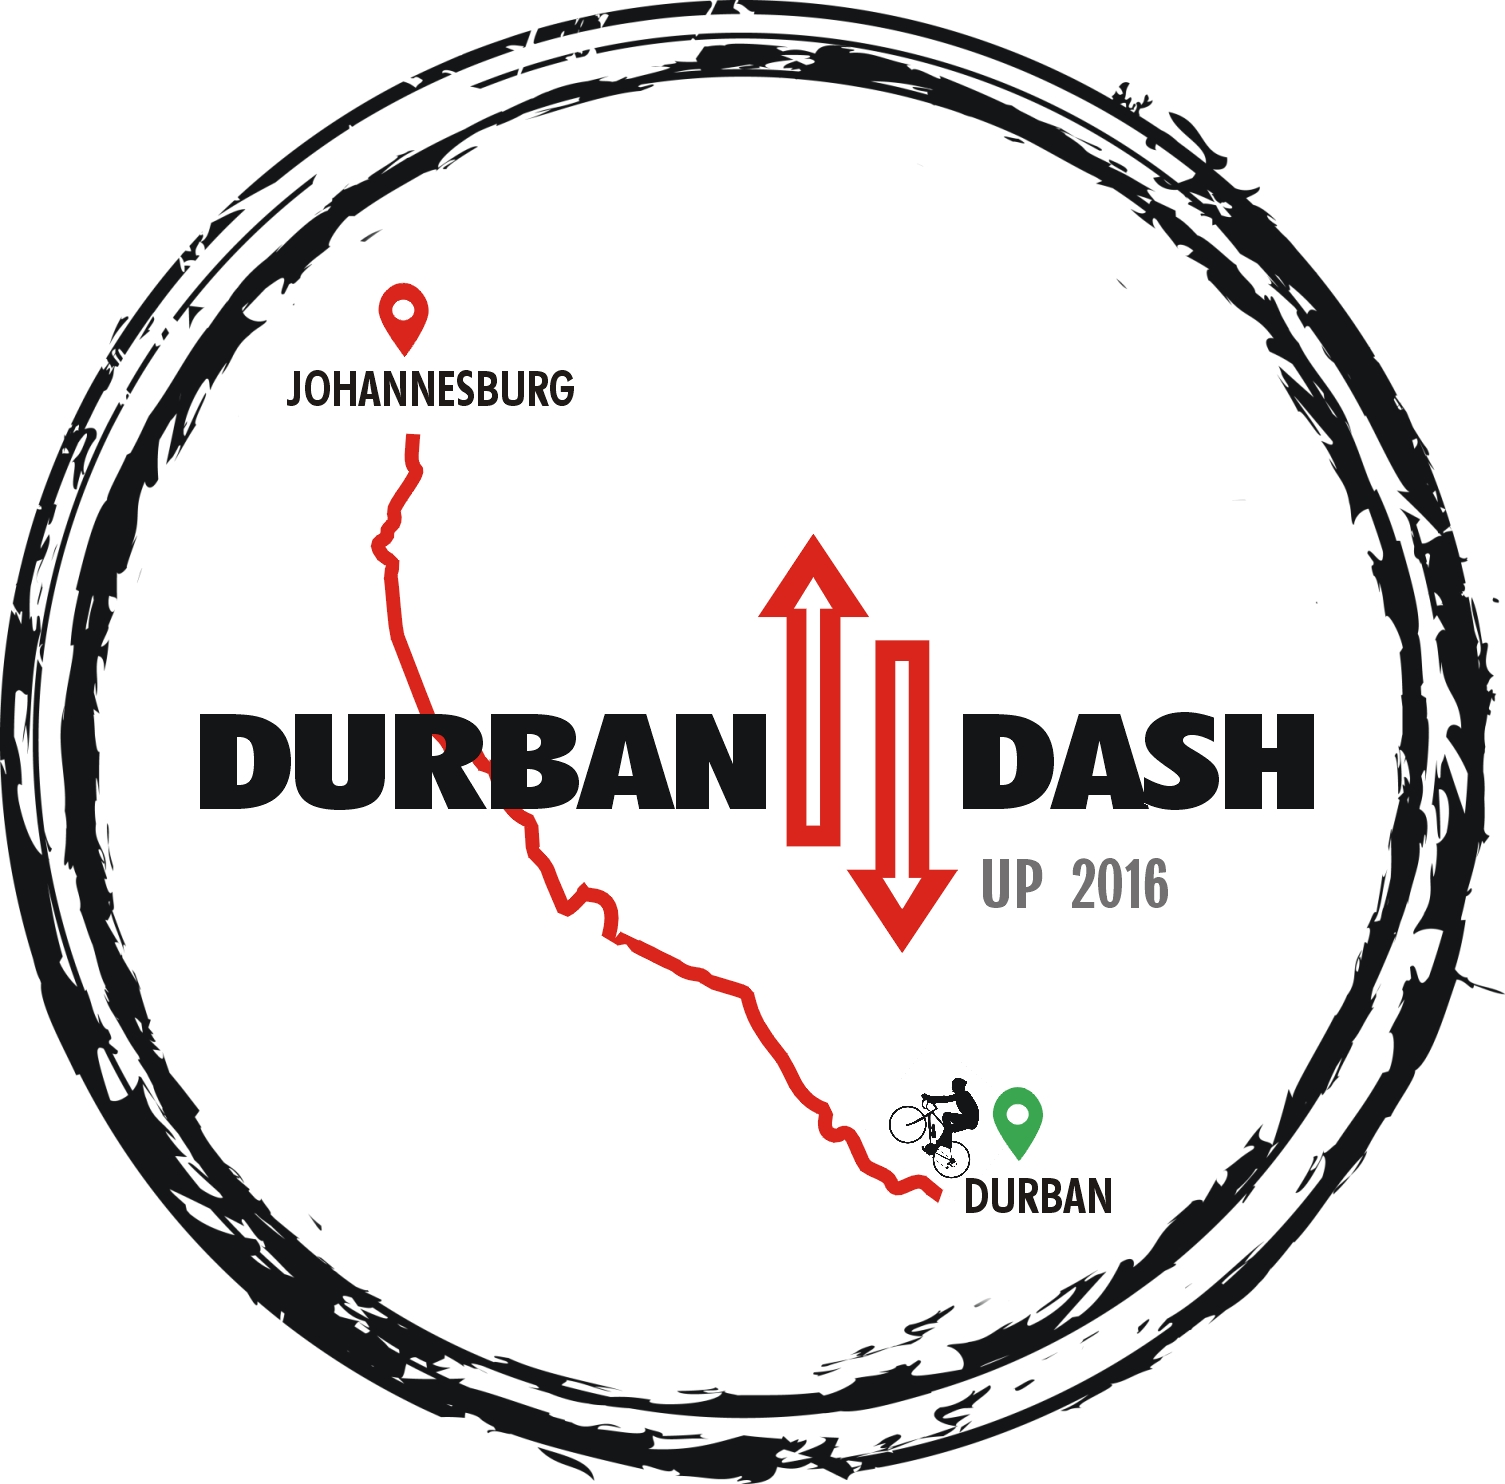 dbn-dash-up-2016-wood-print-design